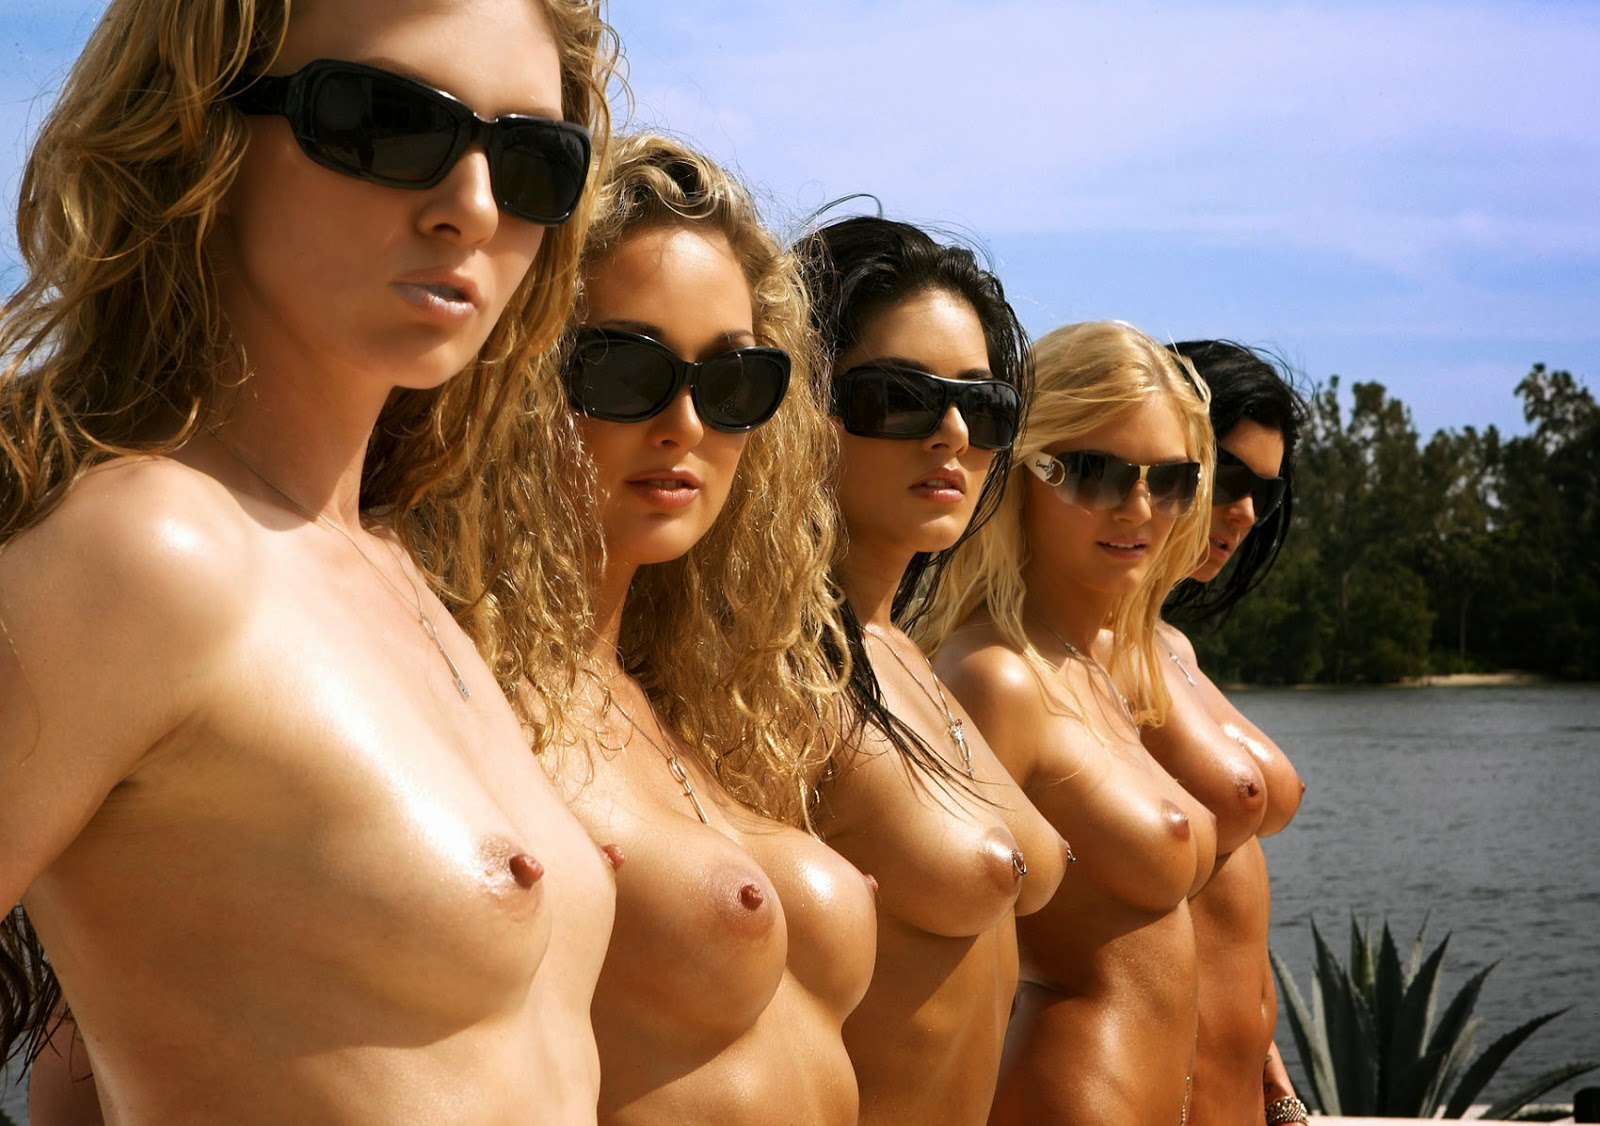 Group Nude Females